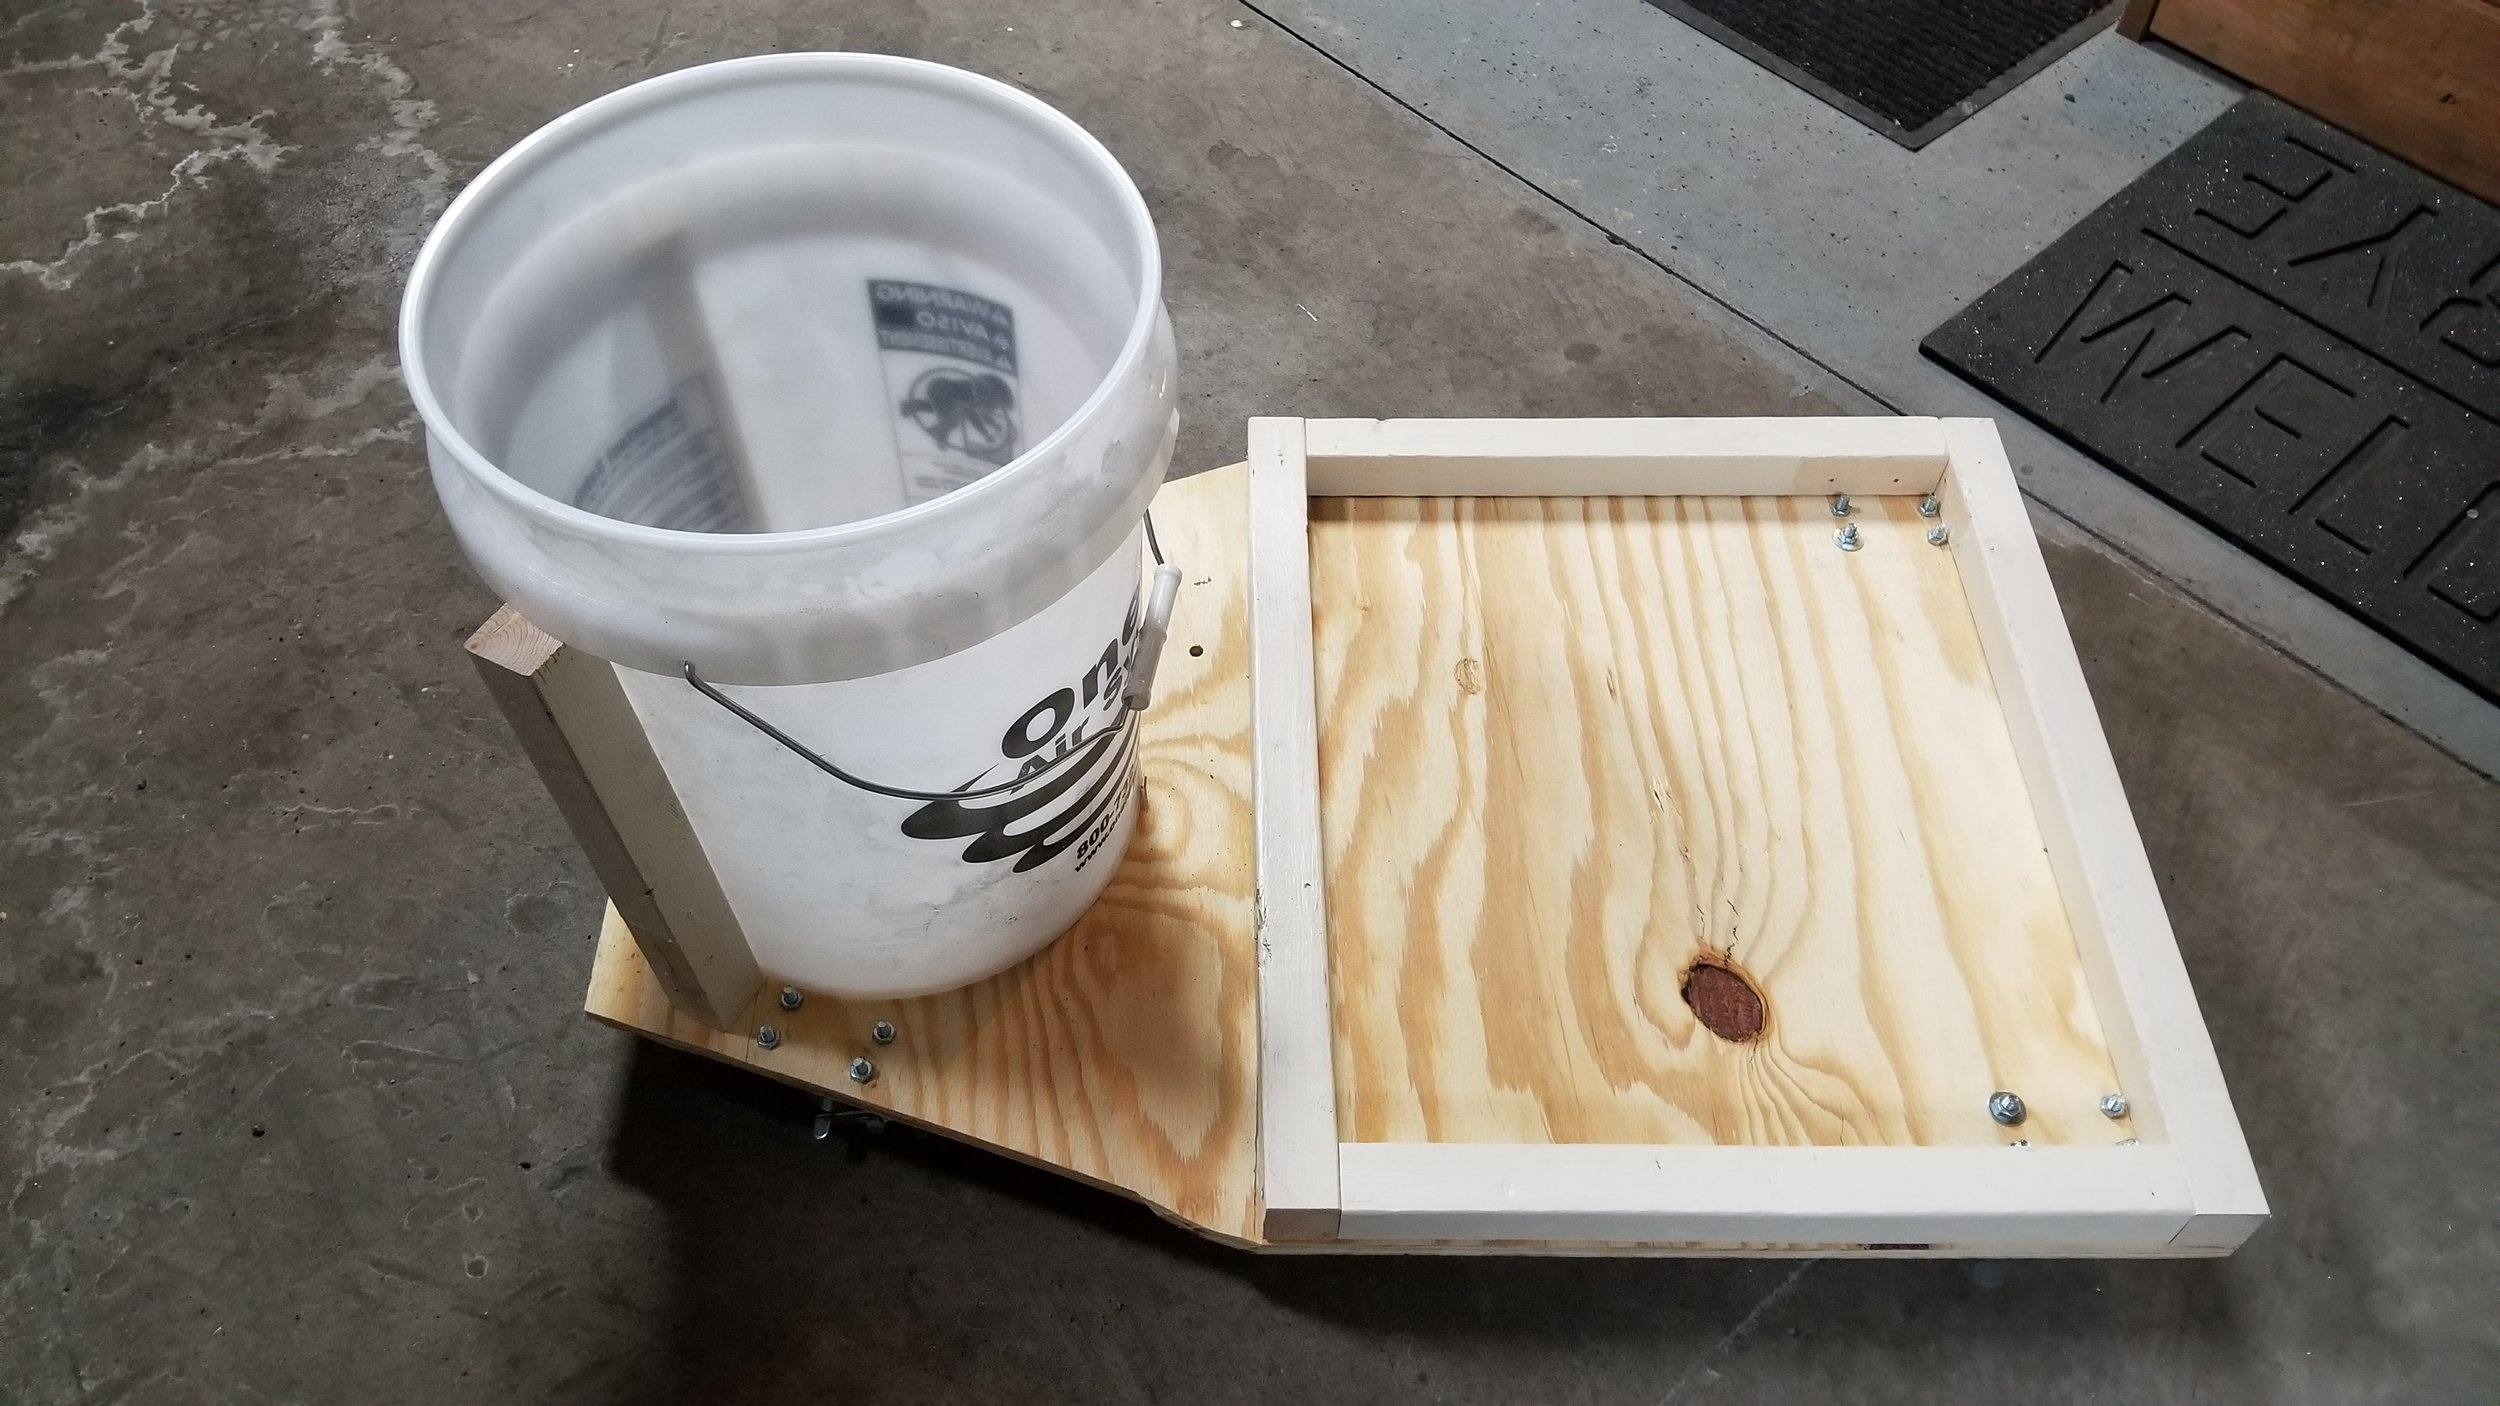 - I bolted the bottom bucket to the plywood.